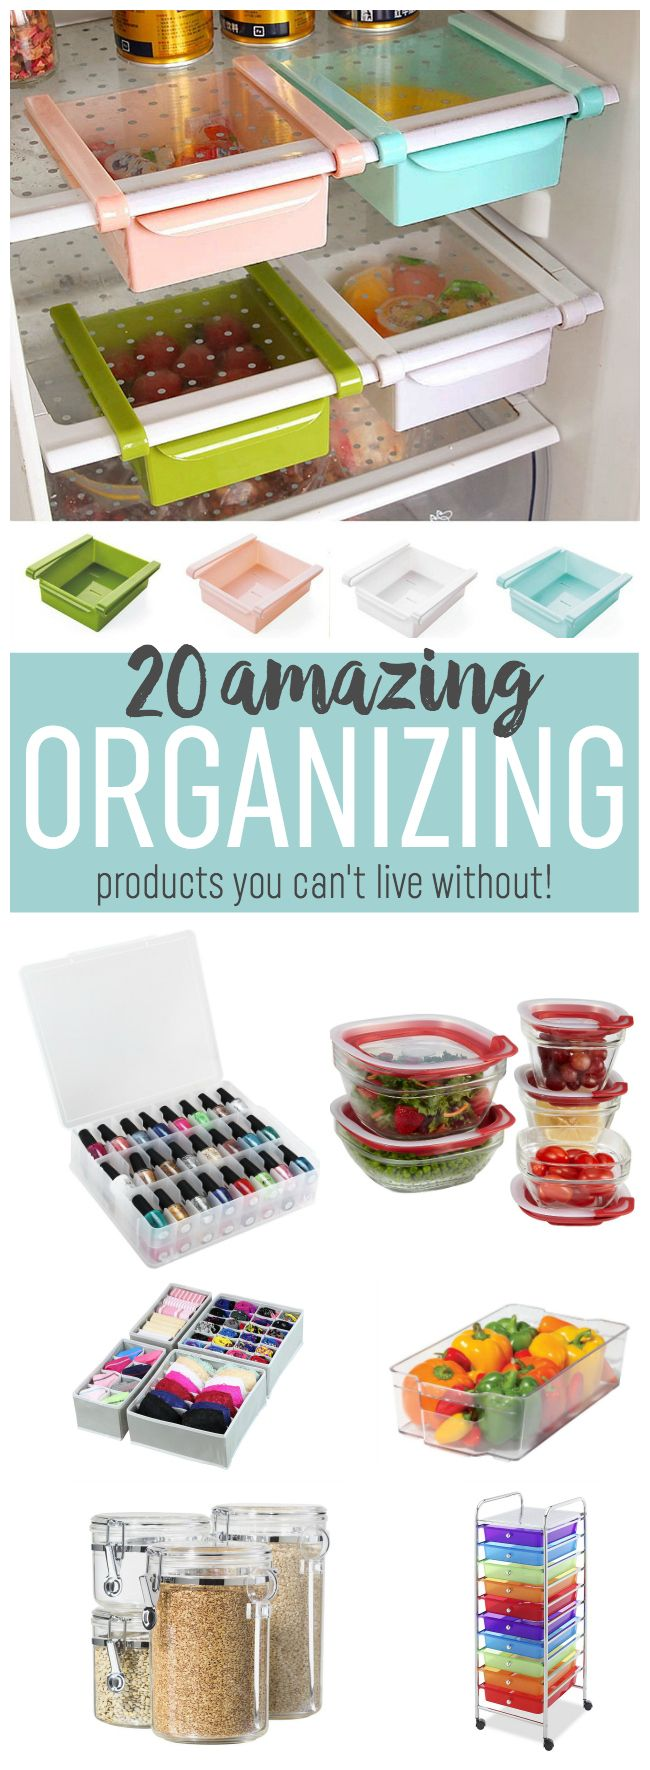 Get your home organized this year with these 20 amazing organizing products you can't live without. They cover all areas of your home and life!